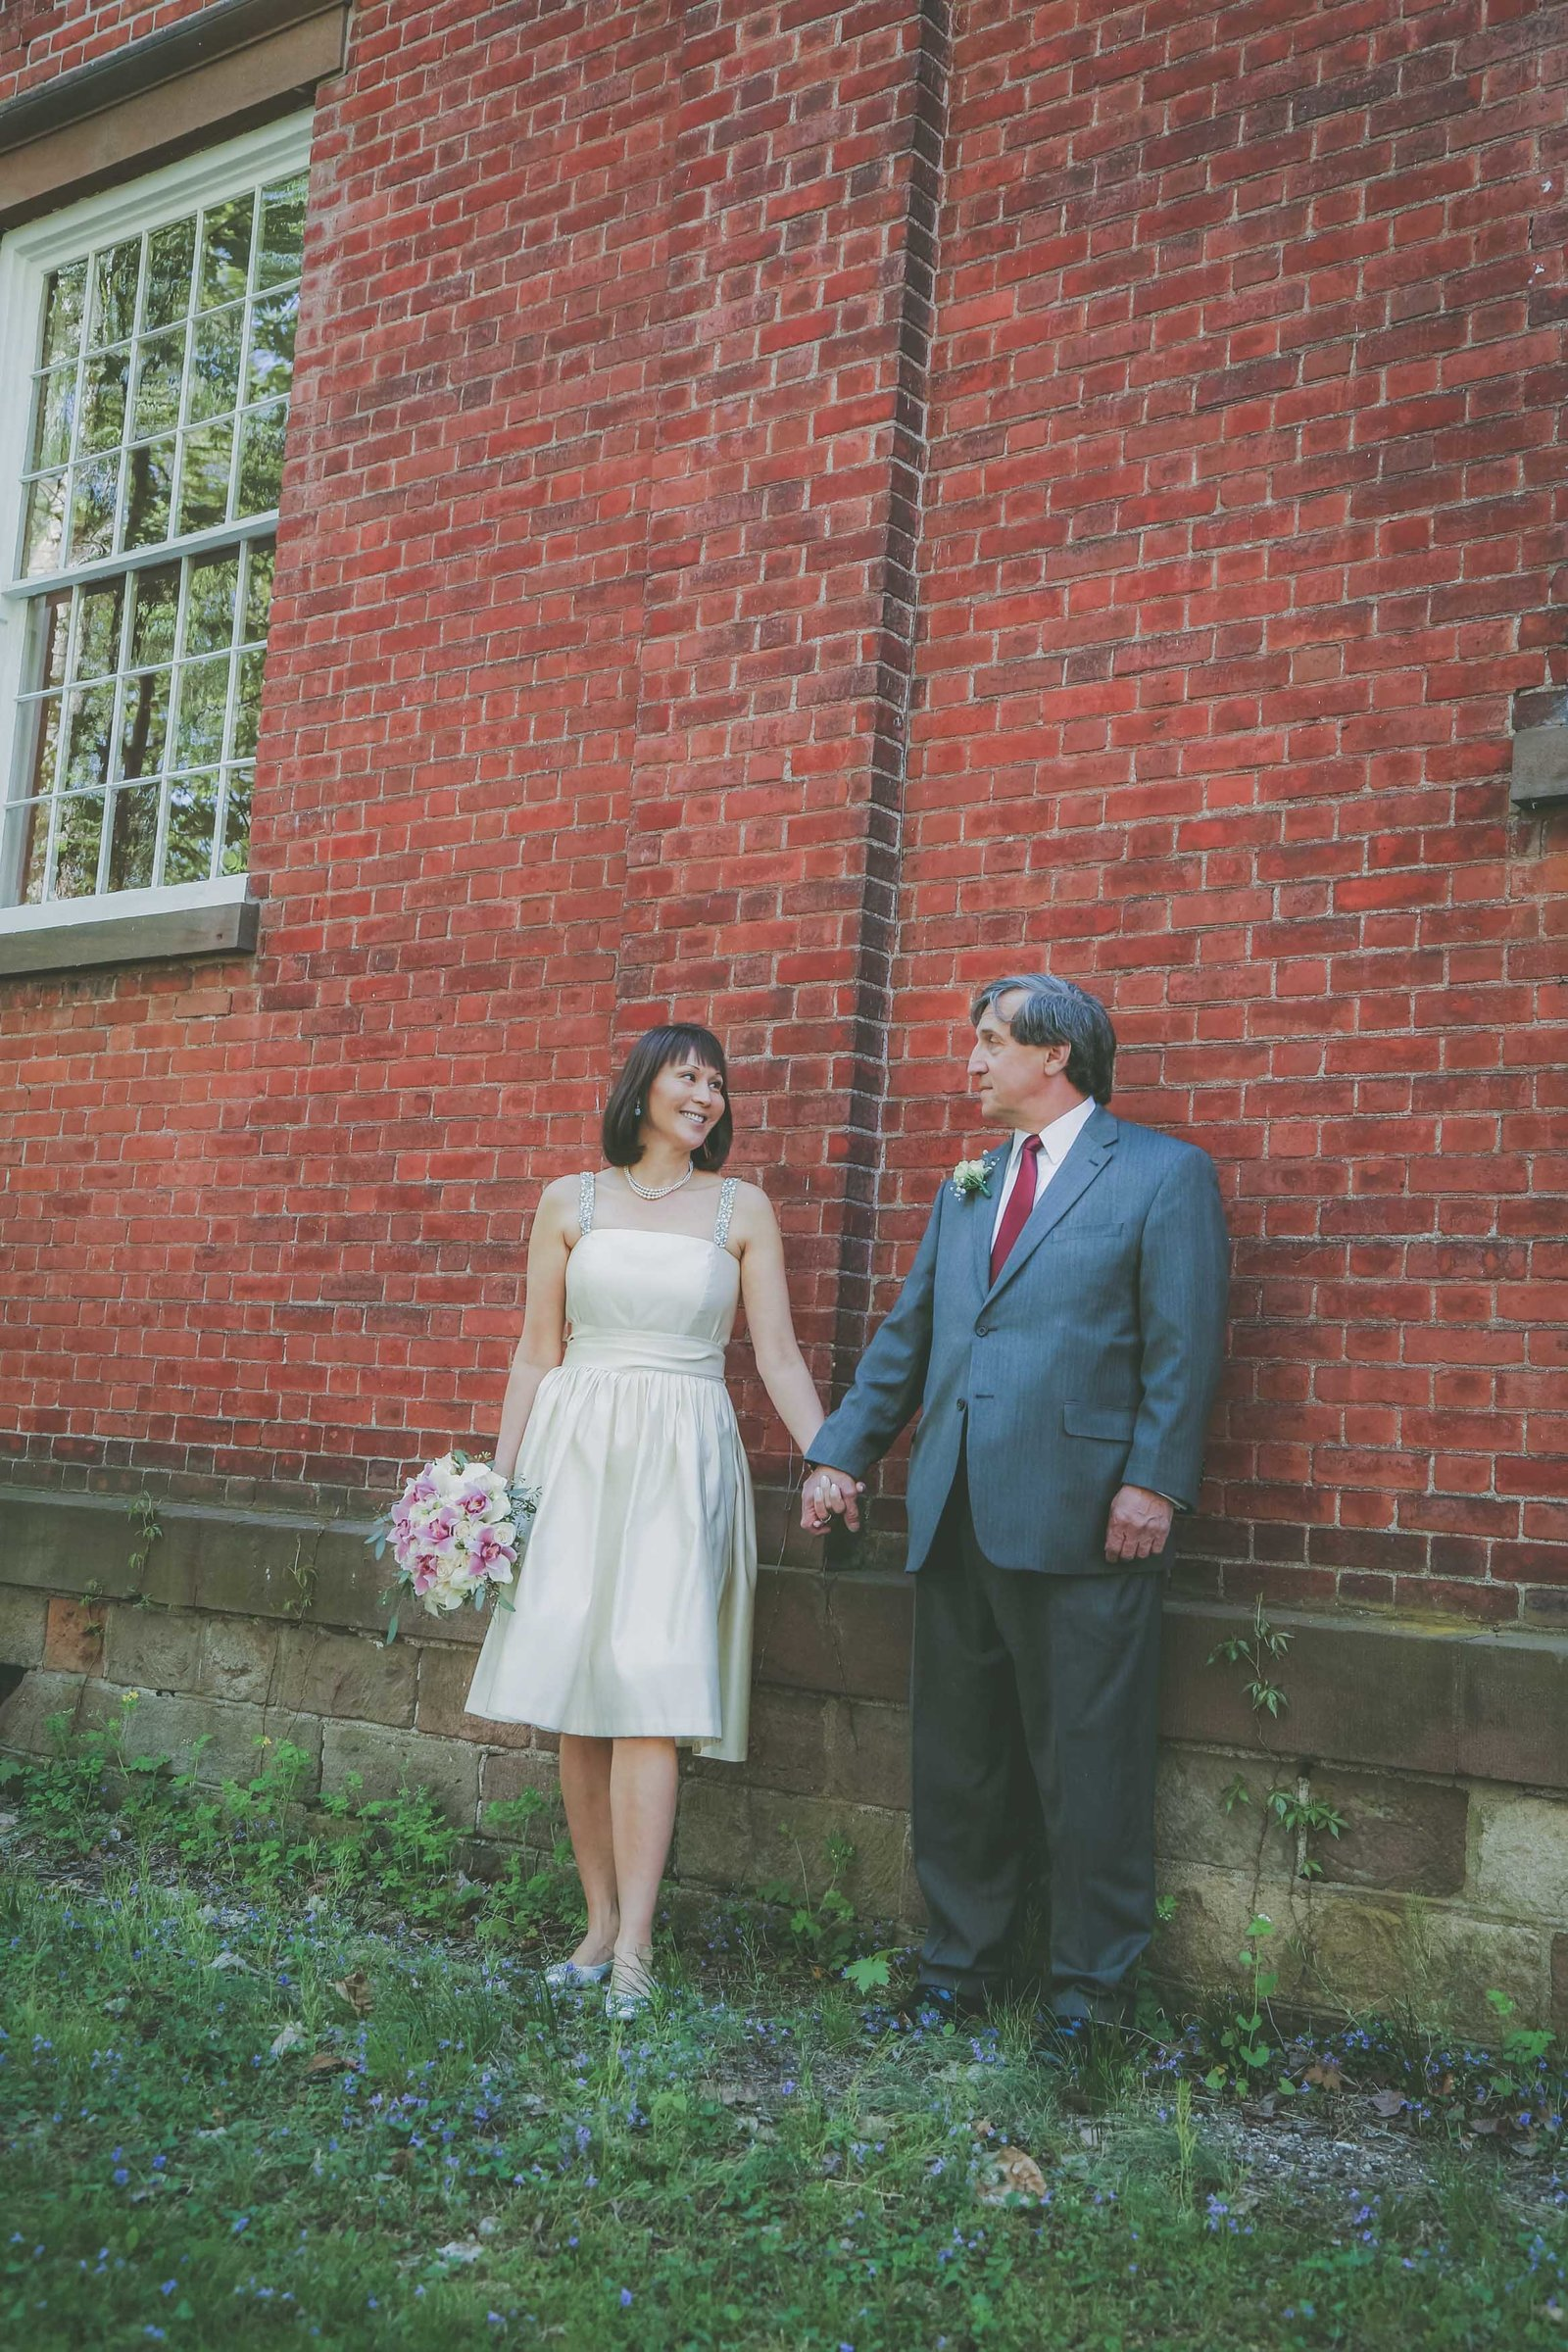 Wedded couple holds hands against a brick building in NJ.